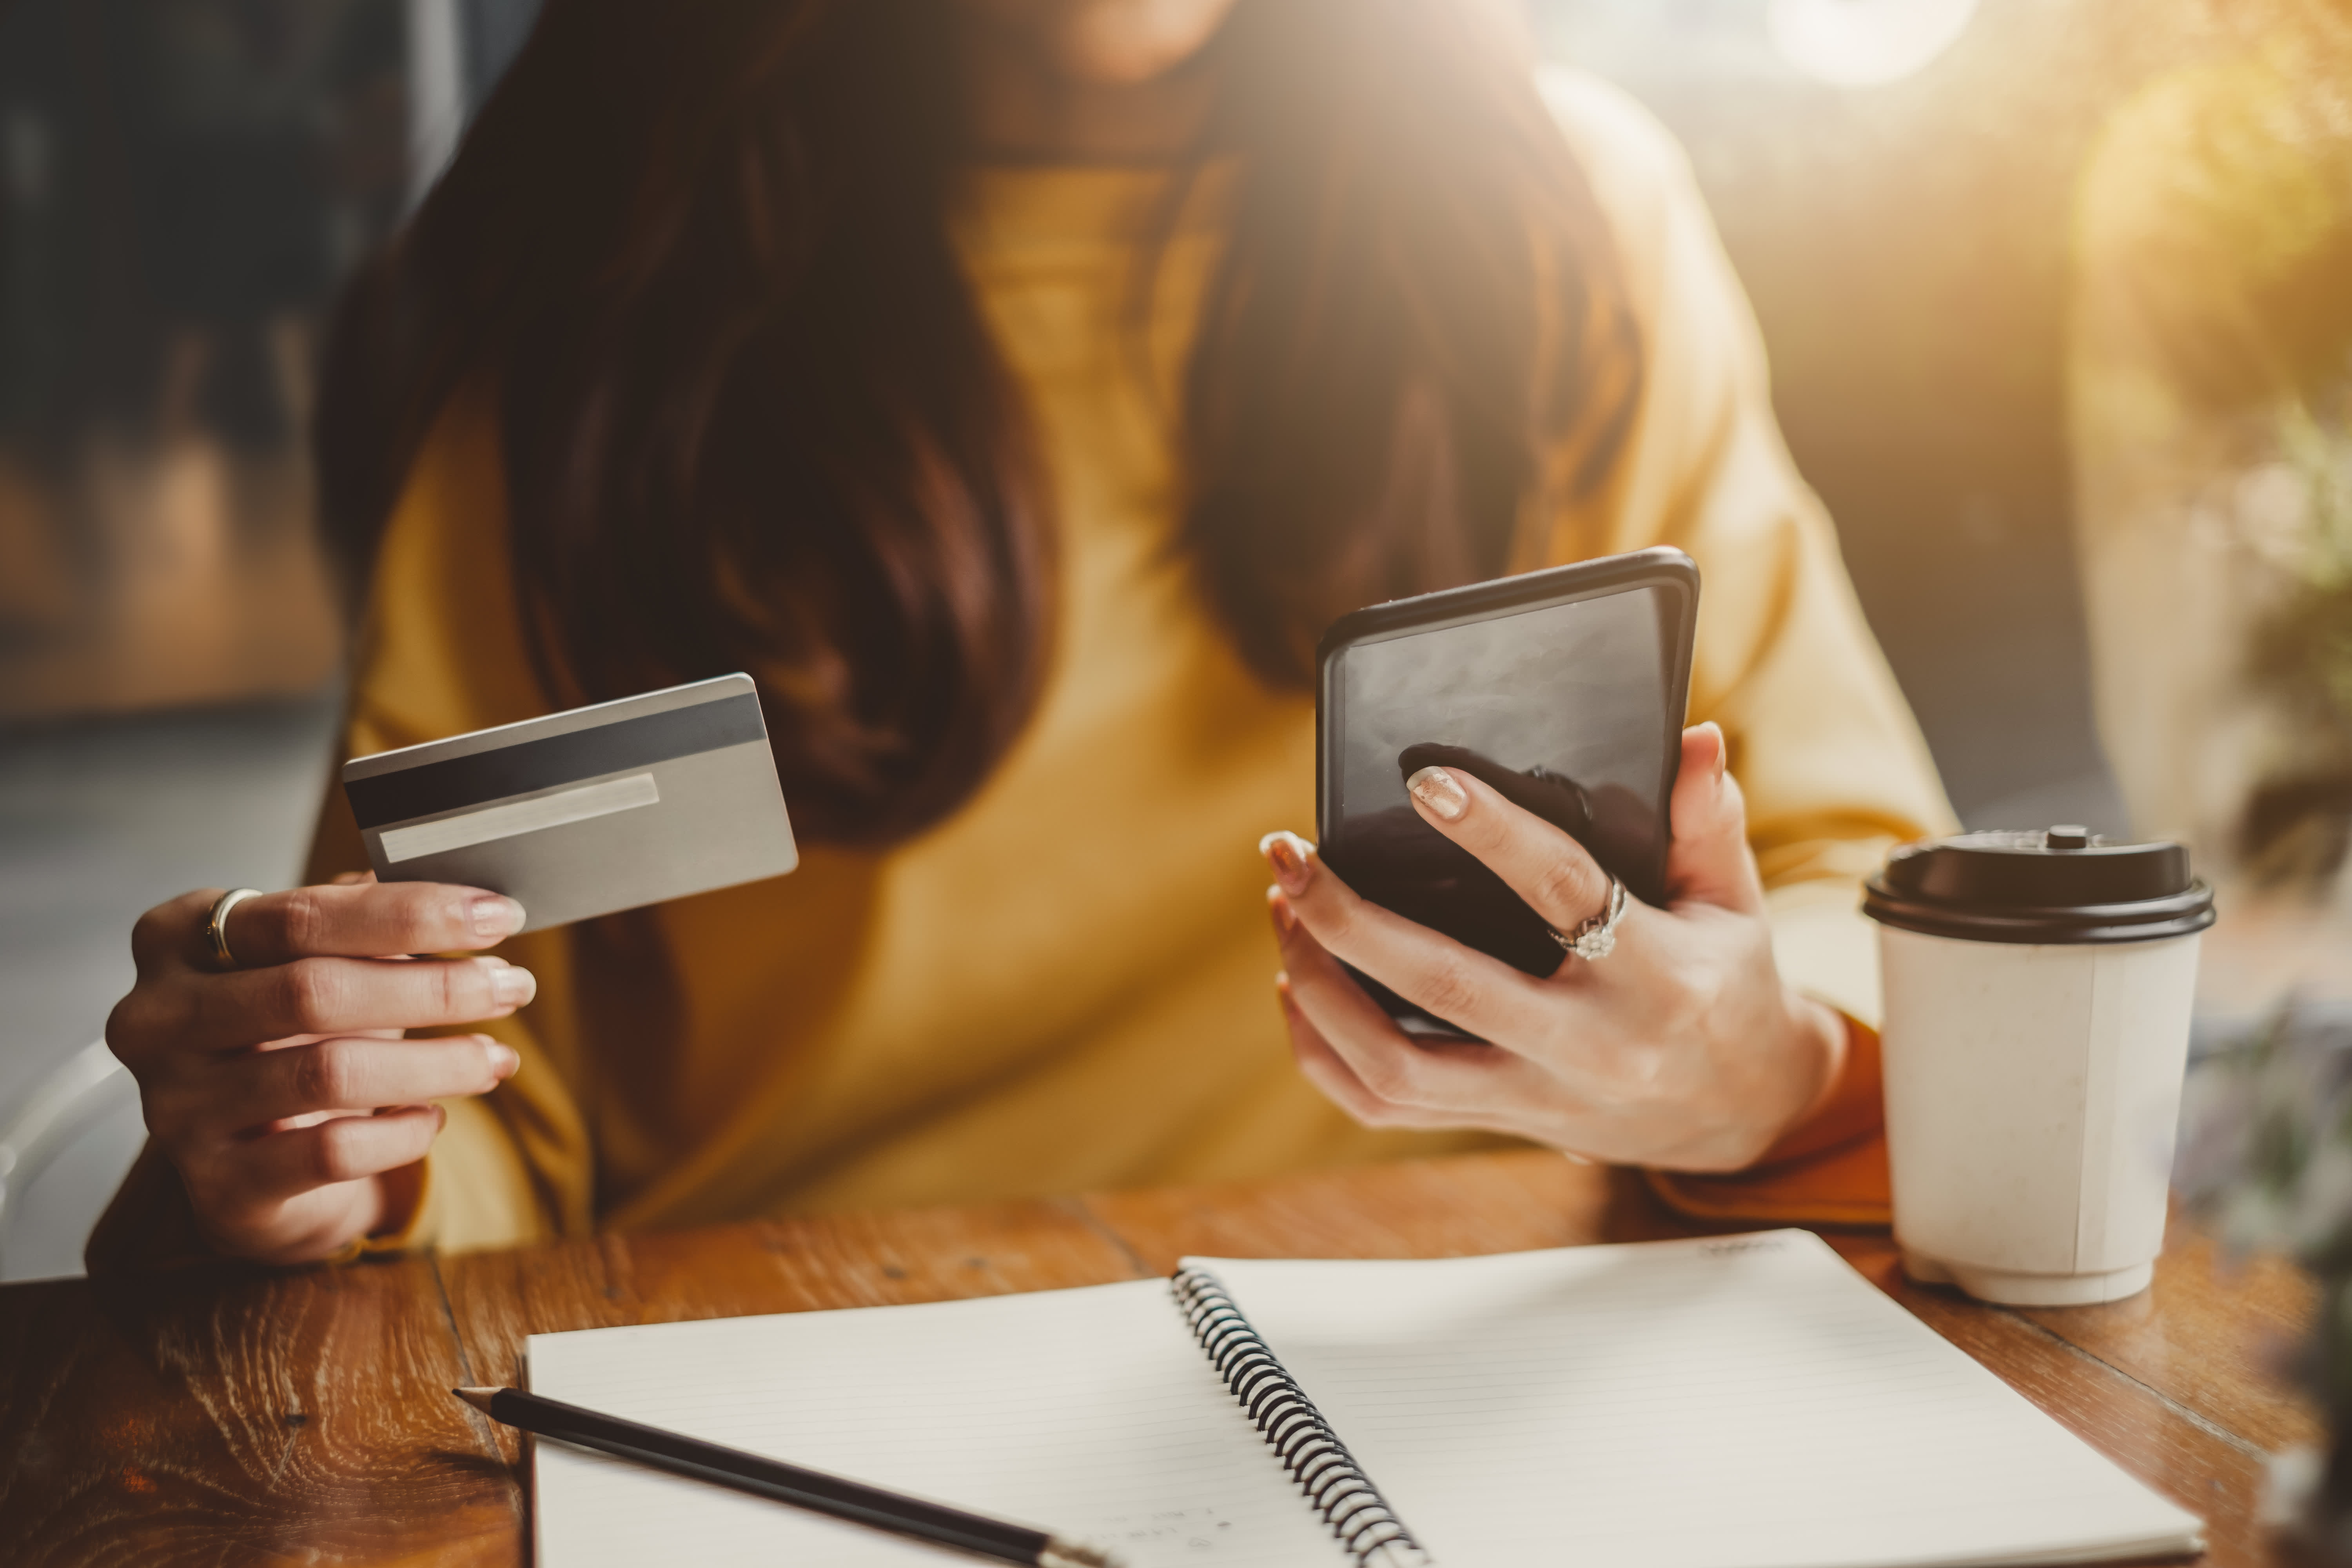 5 tips to make sure you don't overspend on your credit card